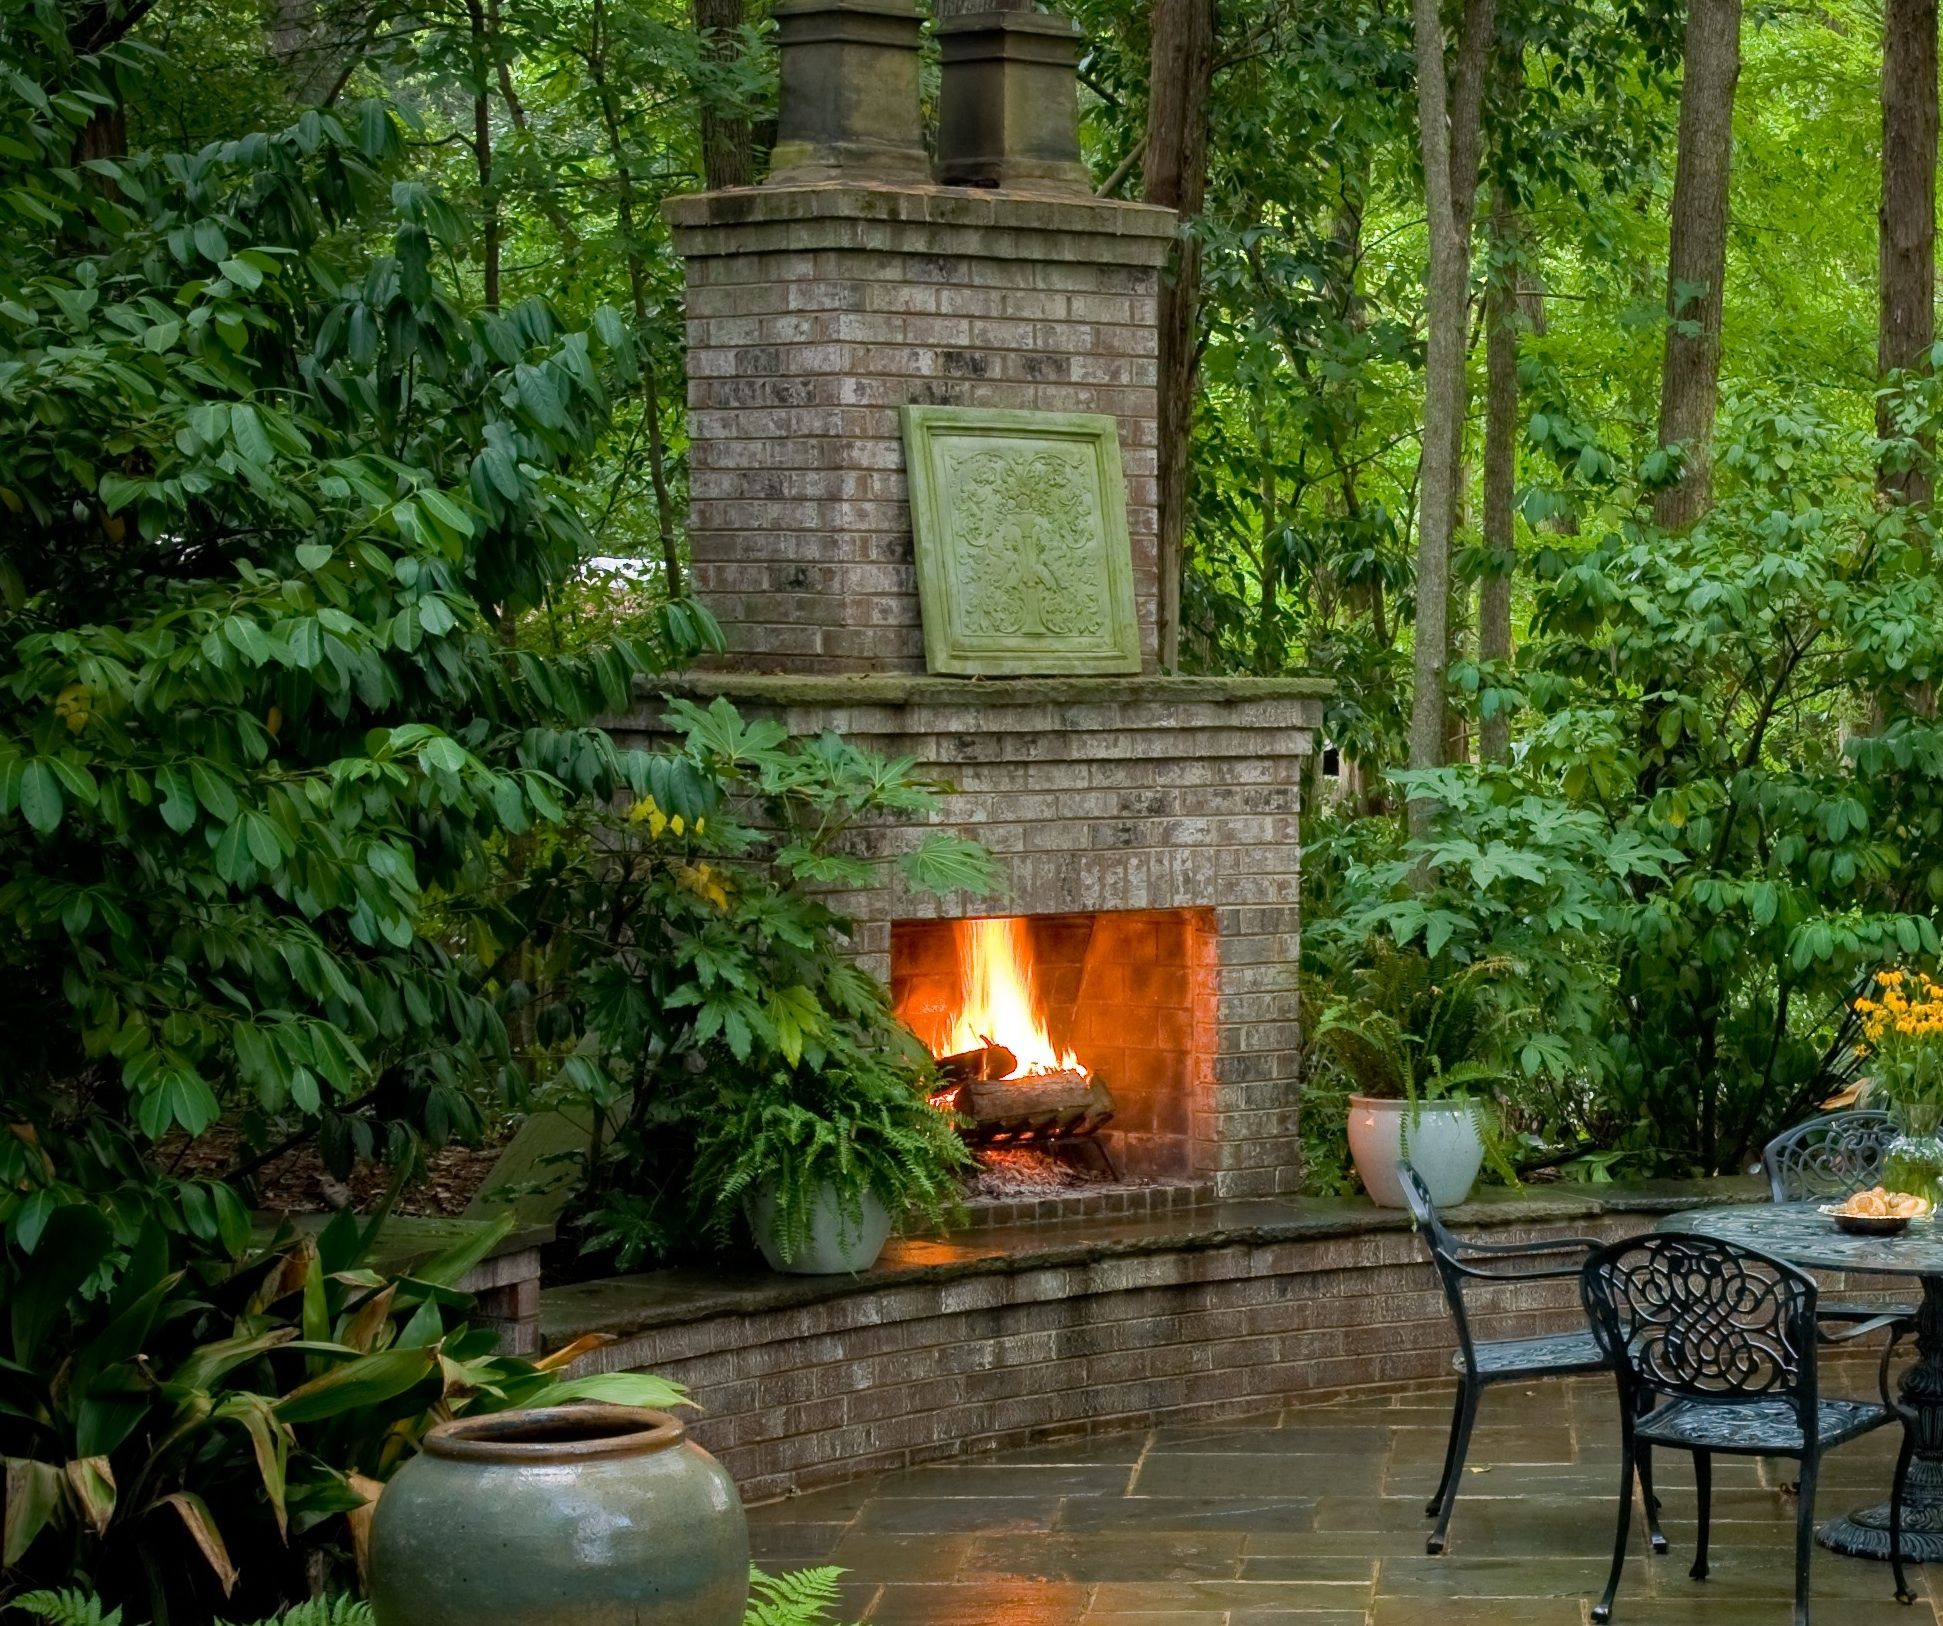 Outdoor brick fireplace in the woods outdoor dining slate patio seating wall outdoor entertaining